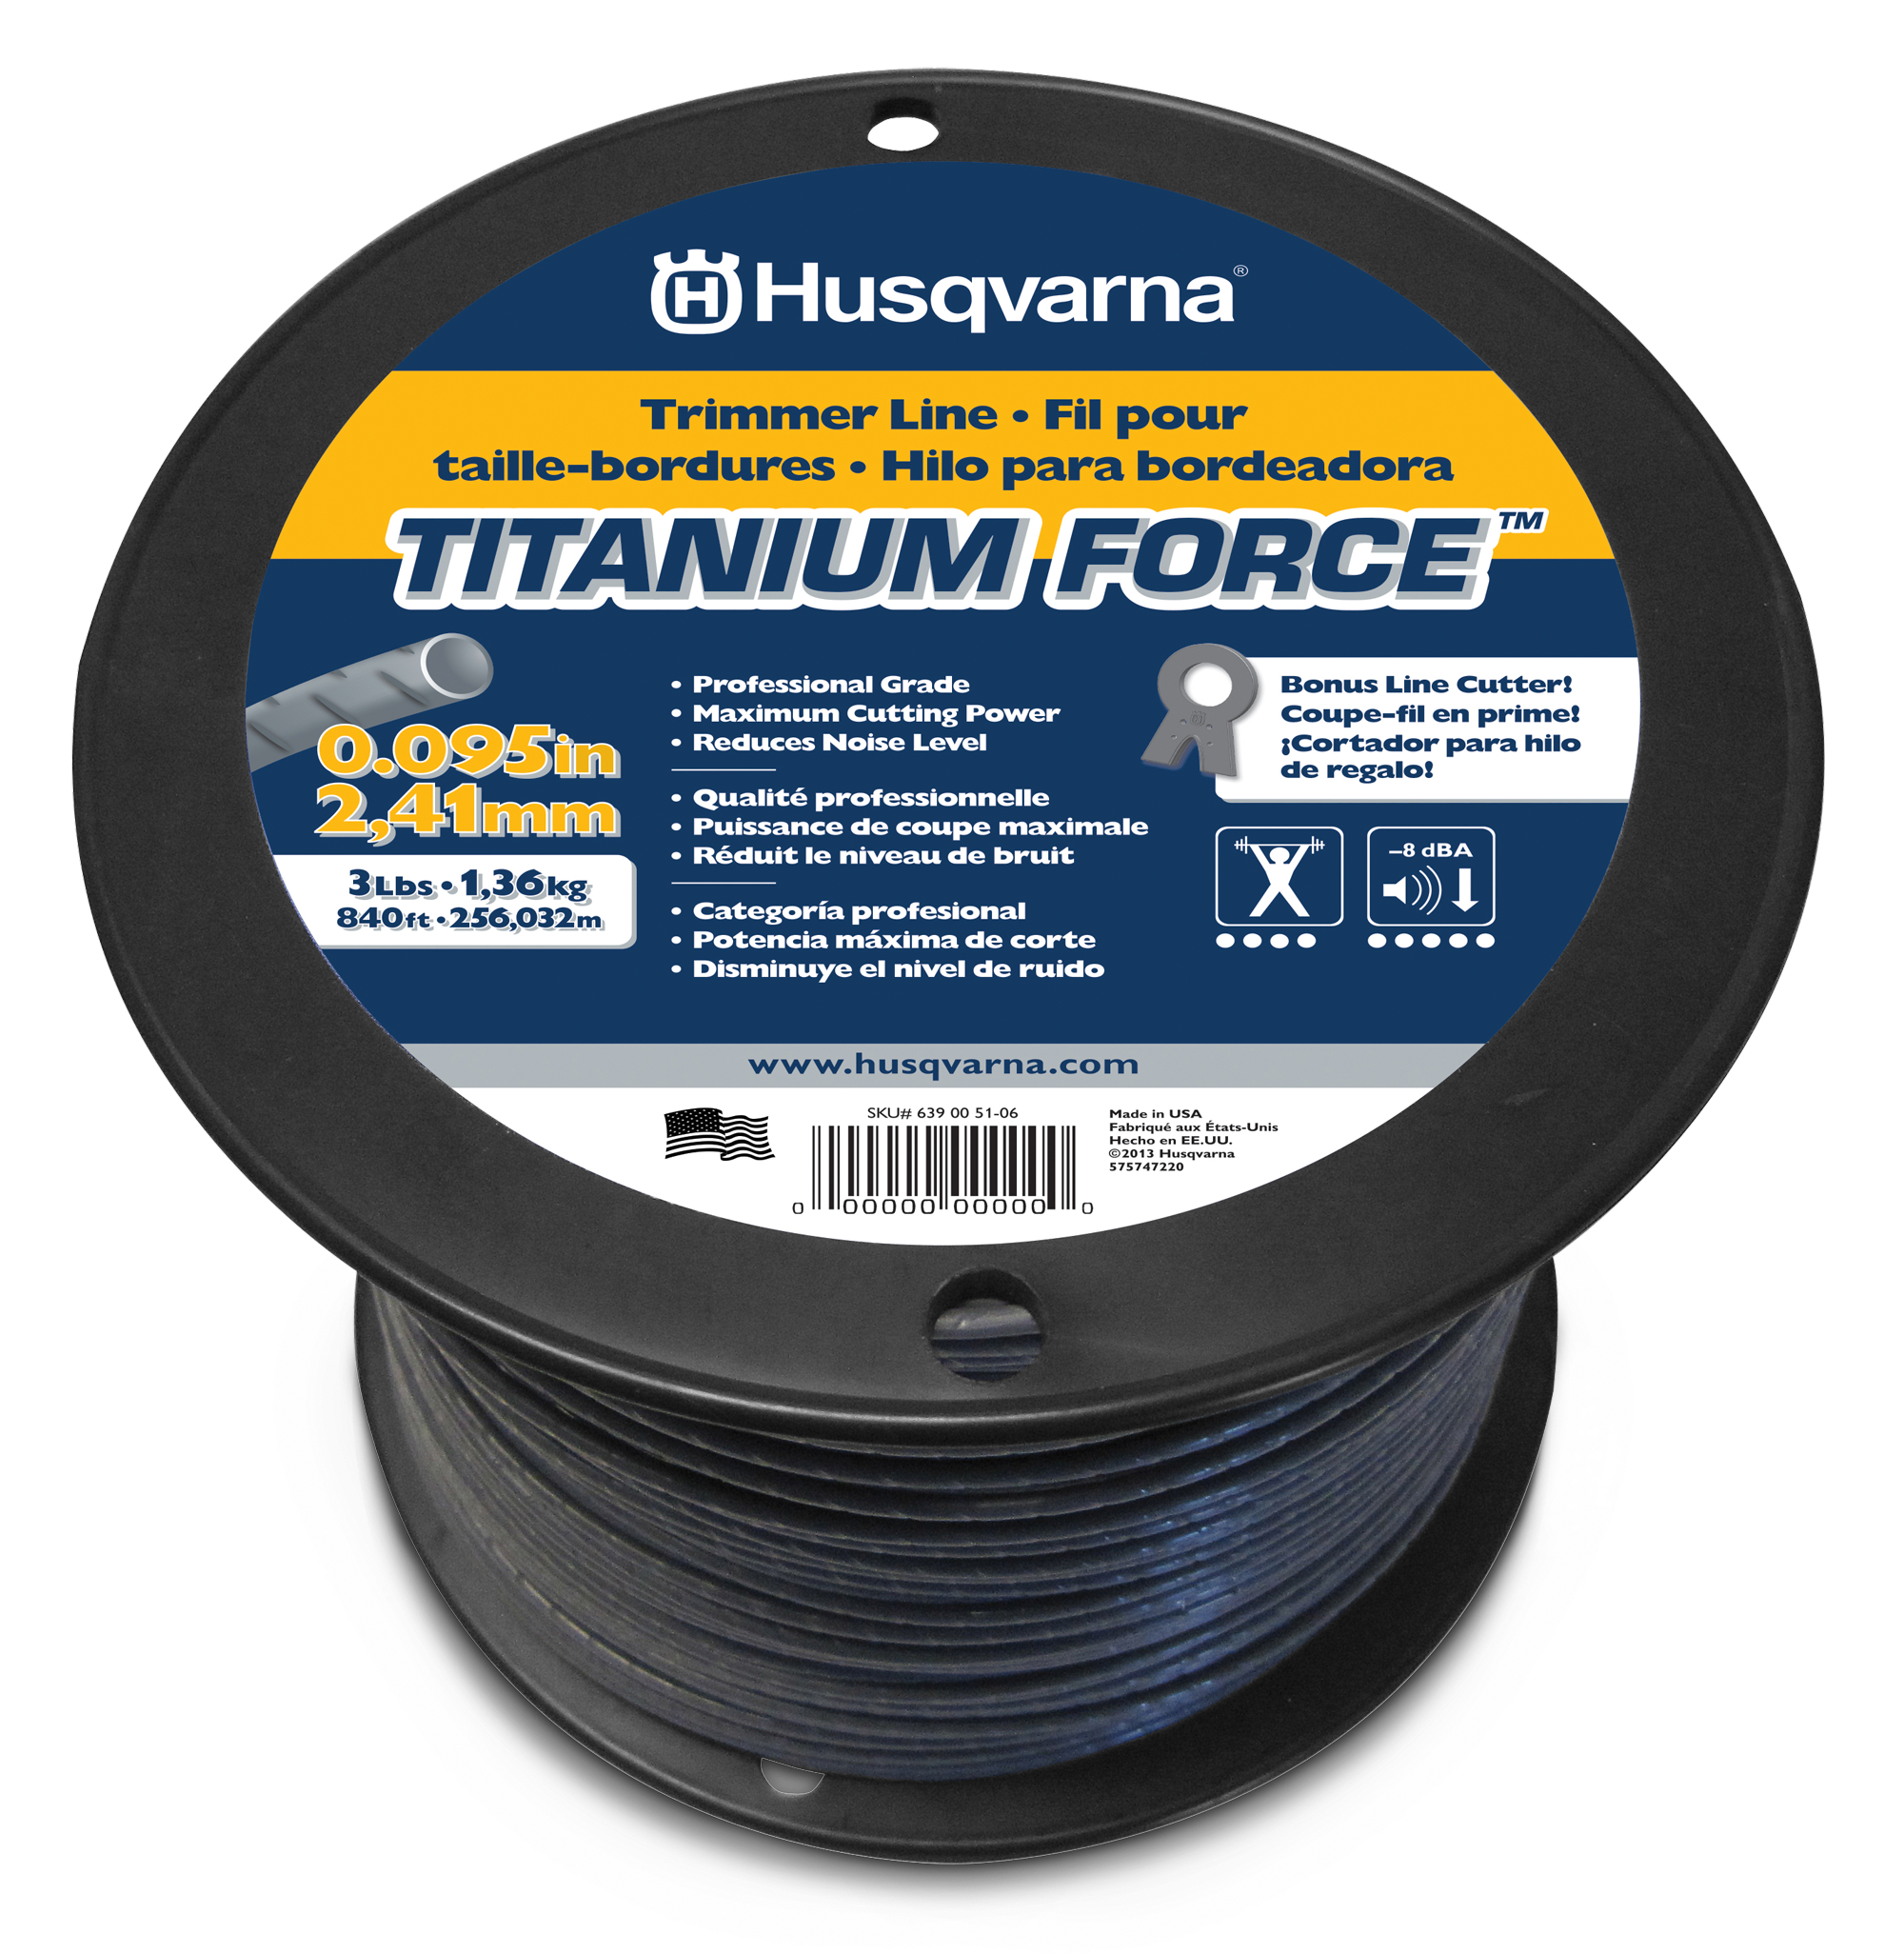 Image for Titanium Force™ Trimmer Line                                                                                                   from HusqvarnaB2C